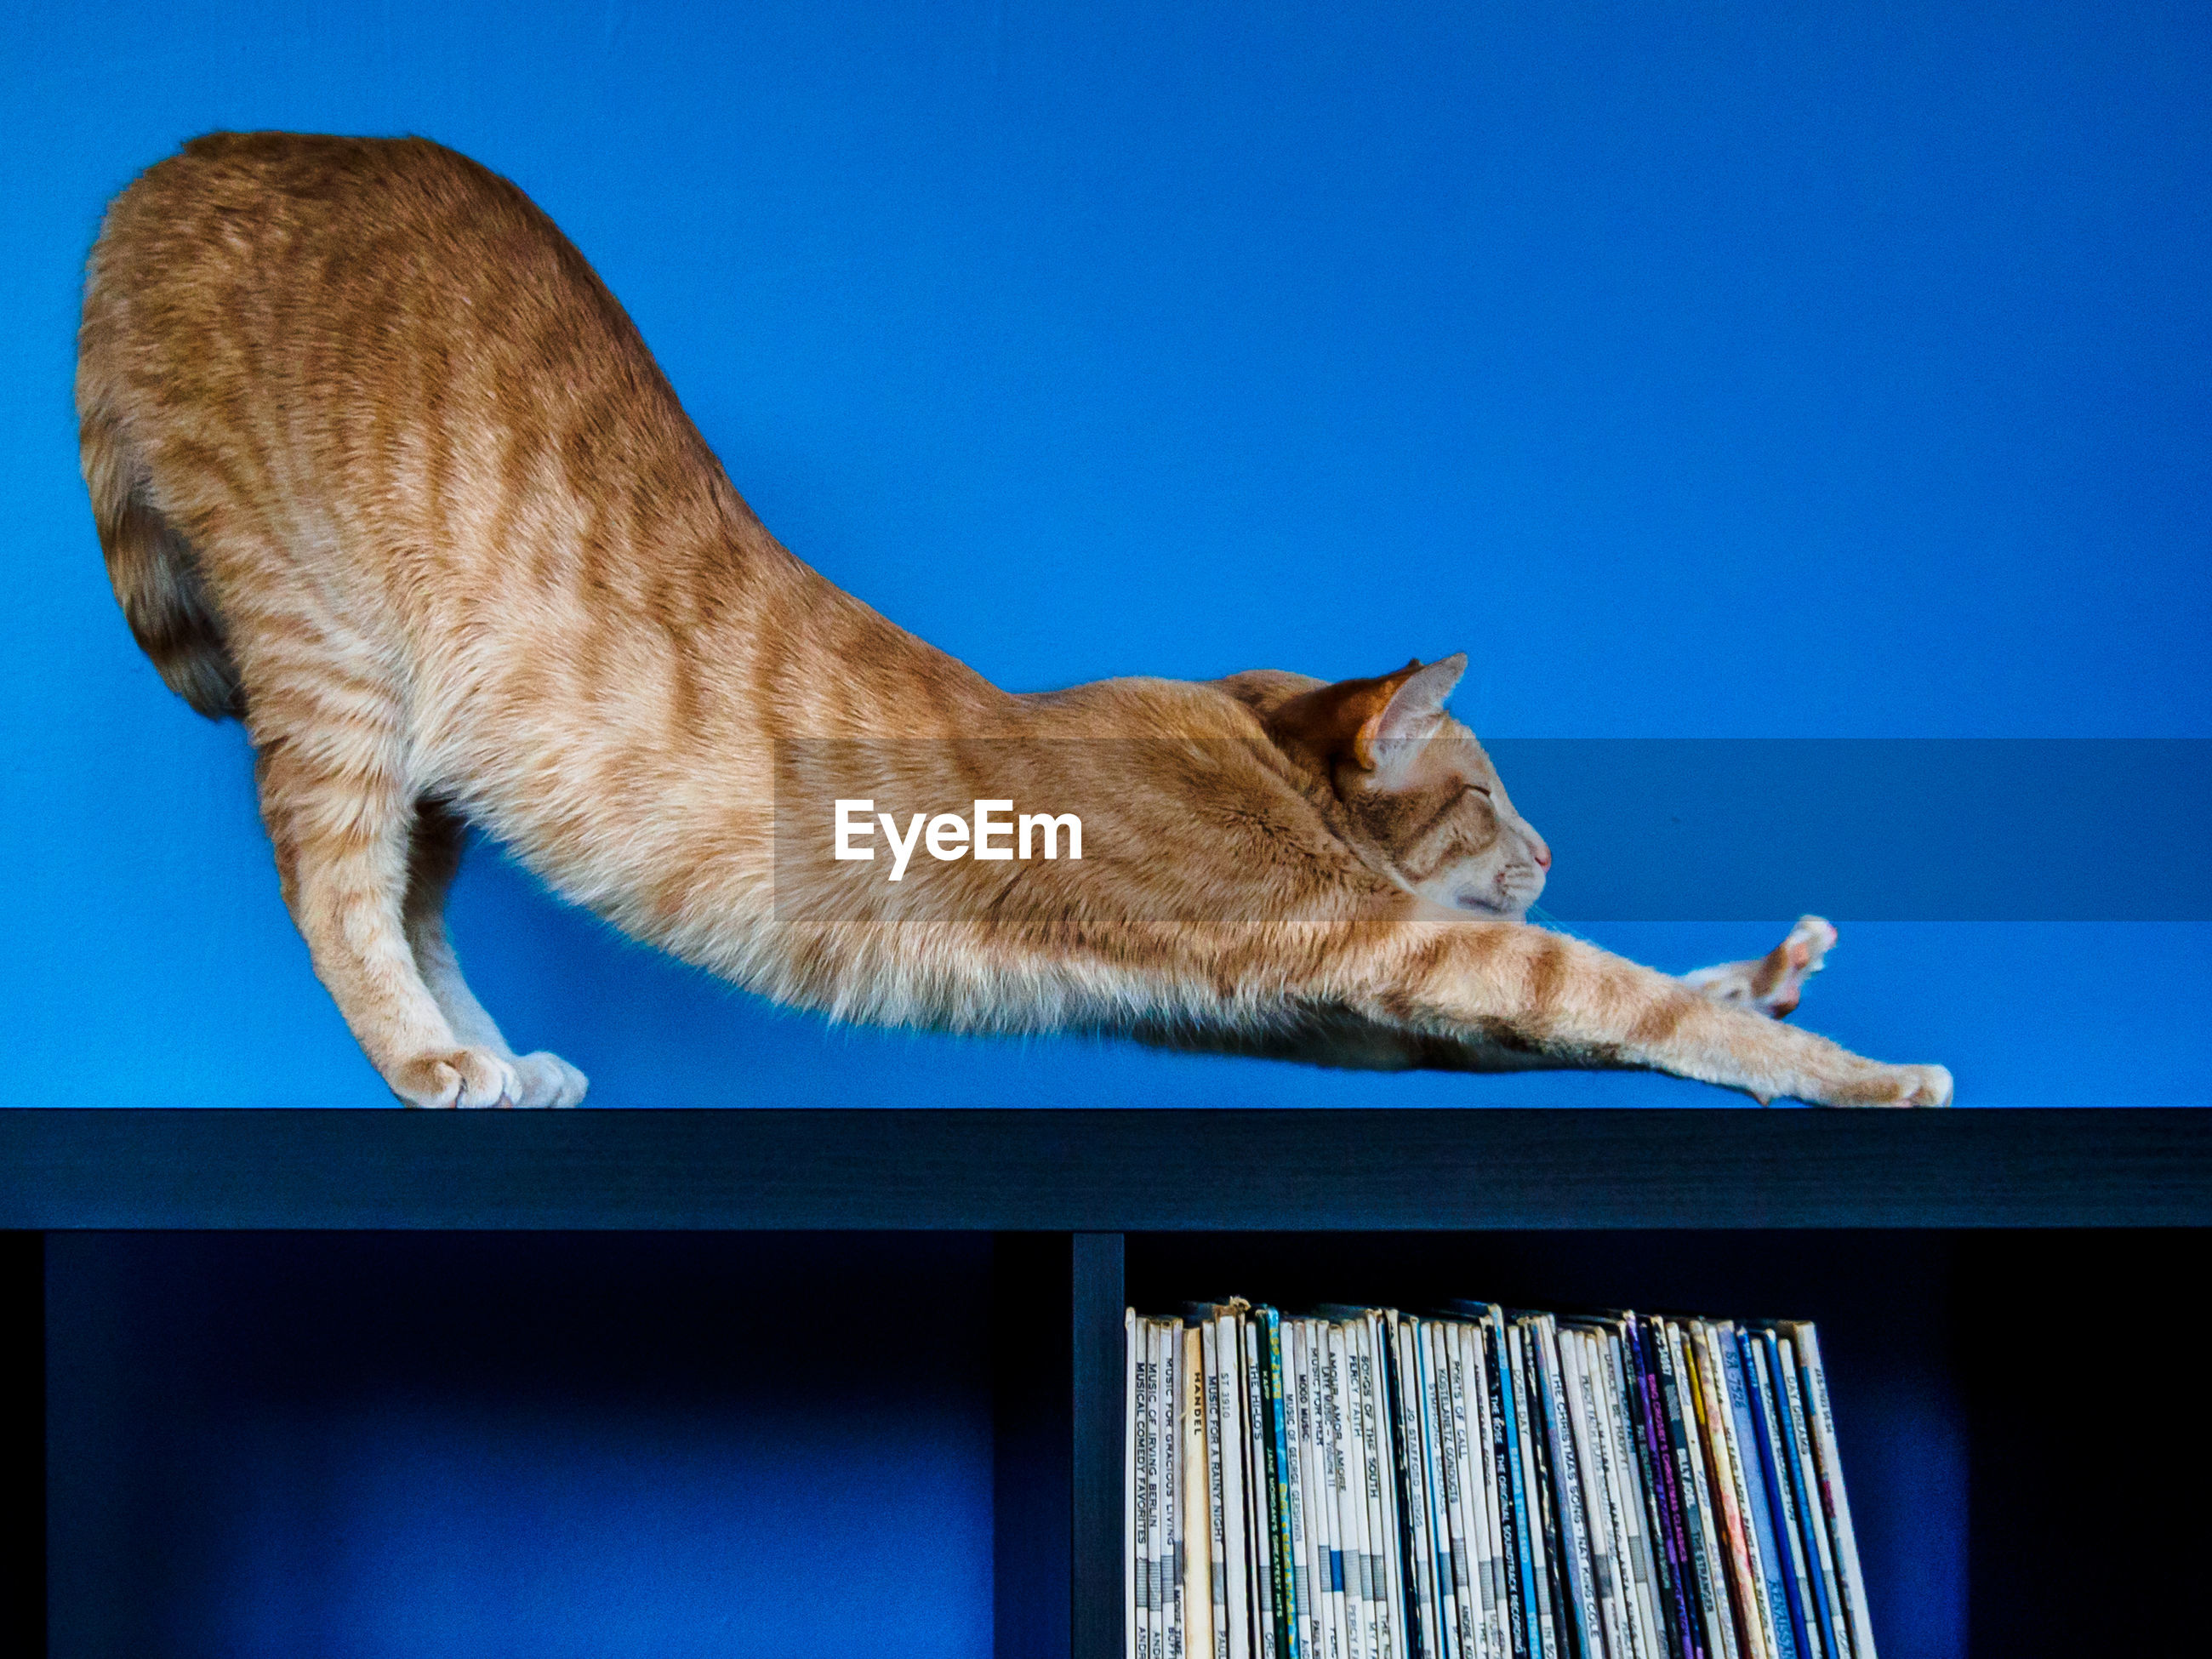 Ginger cat stretching on cabinet against blue wall